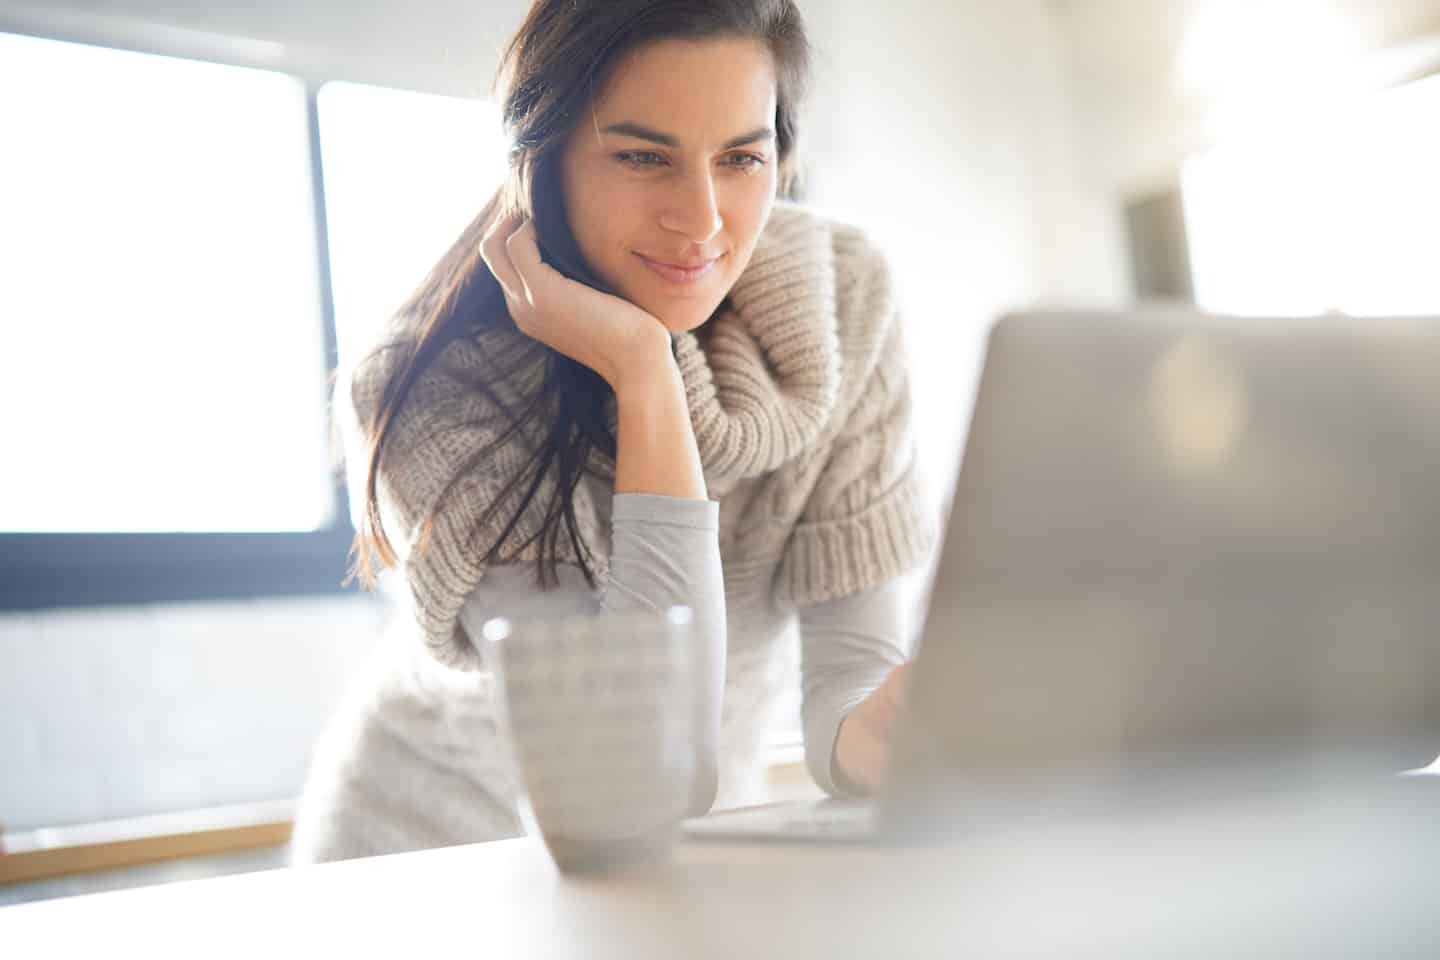 woman looking at a laptop screen